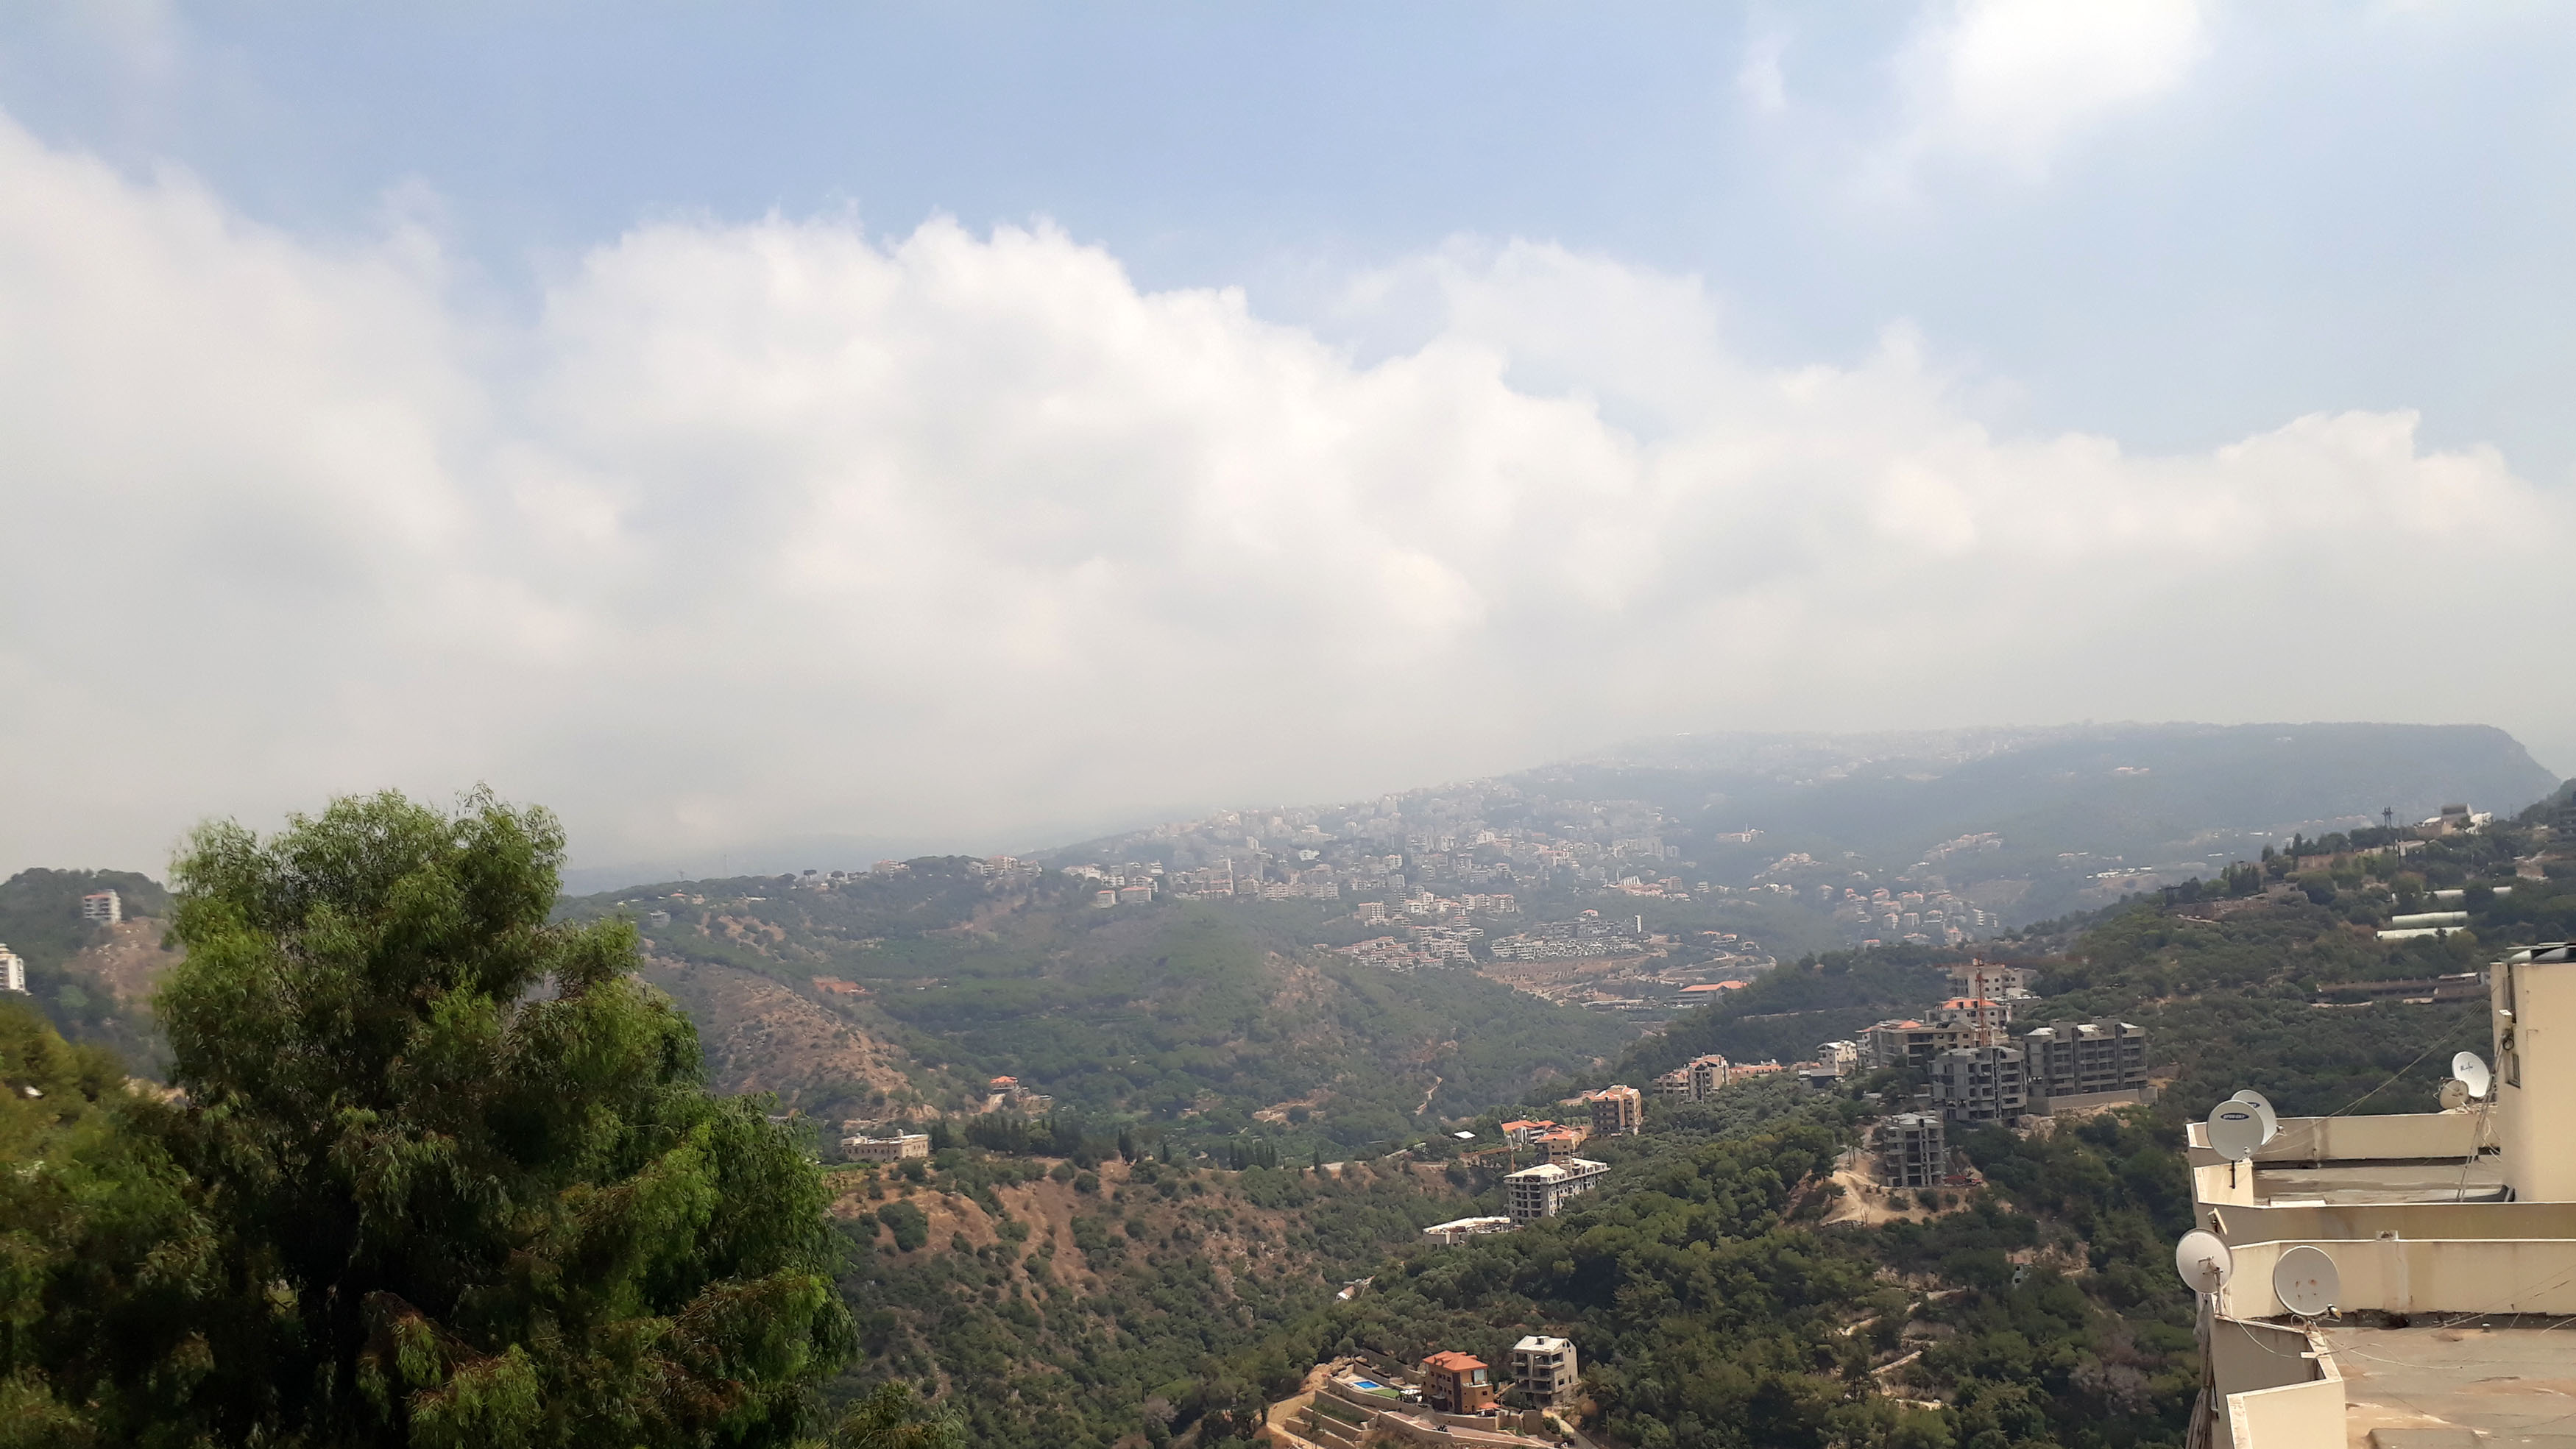 Apartment For Sale in Deir Tamich Metn with mountain view